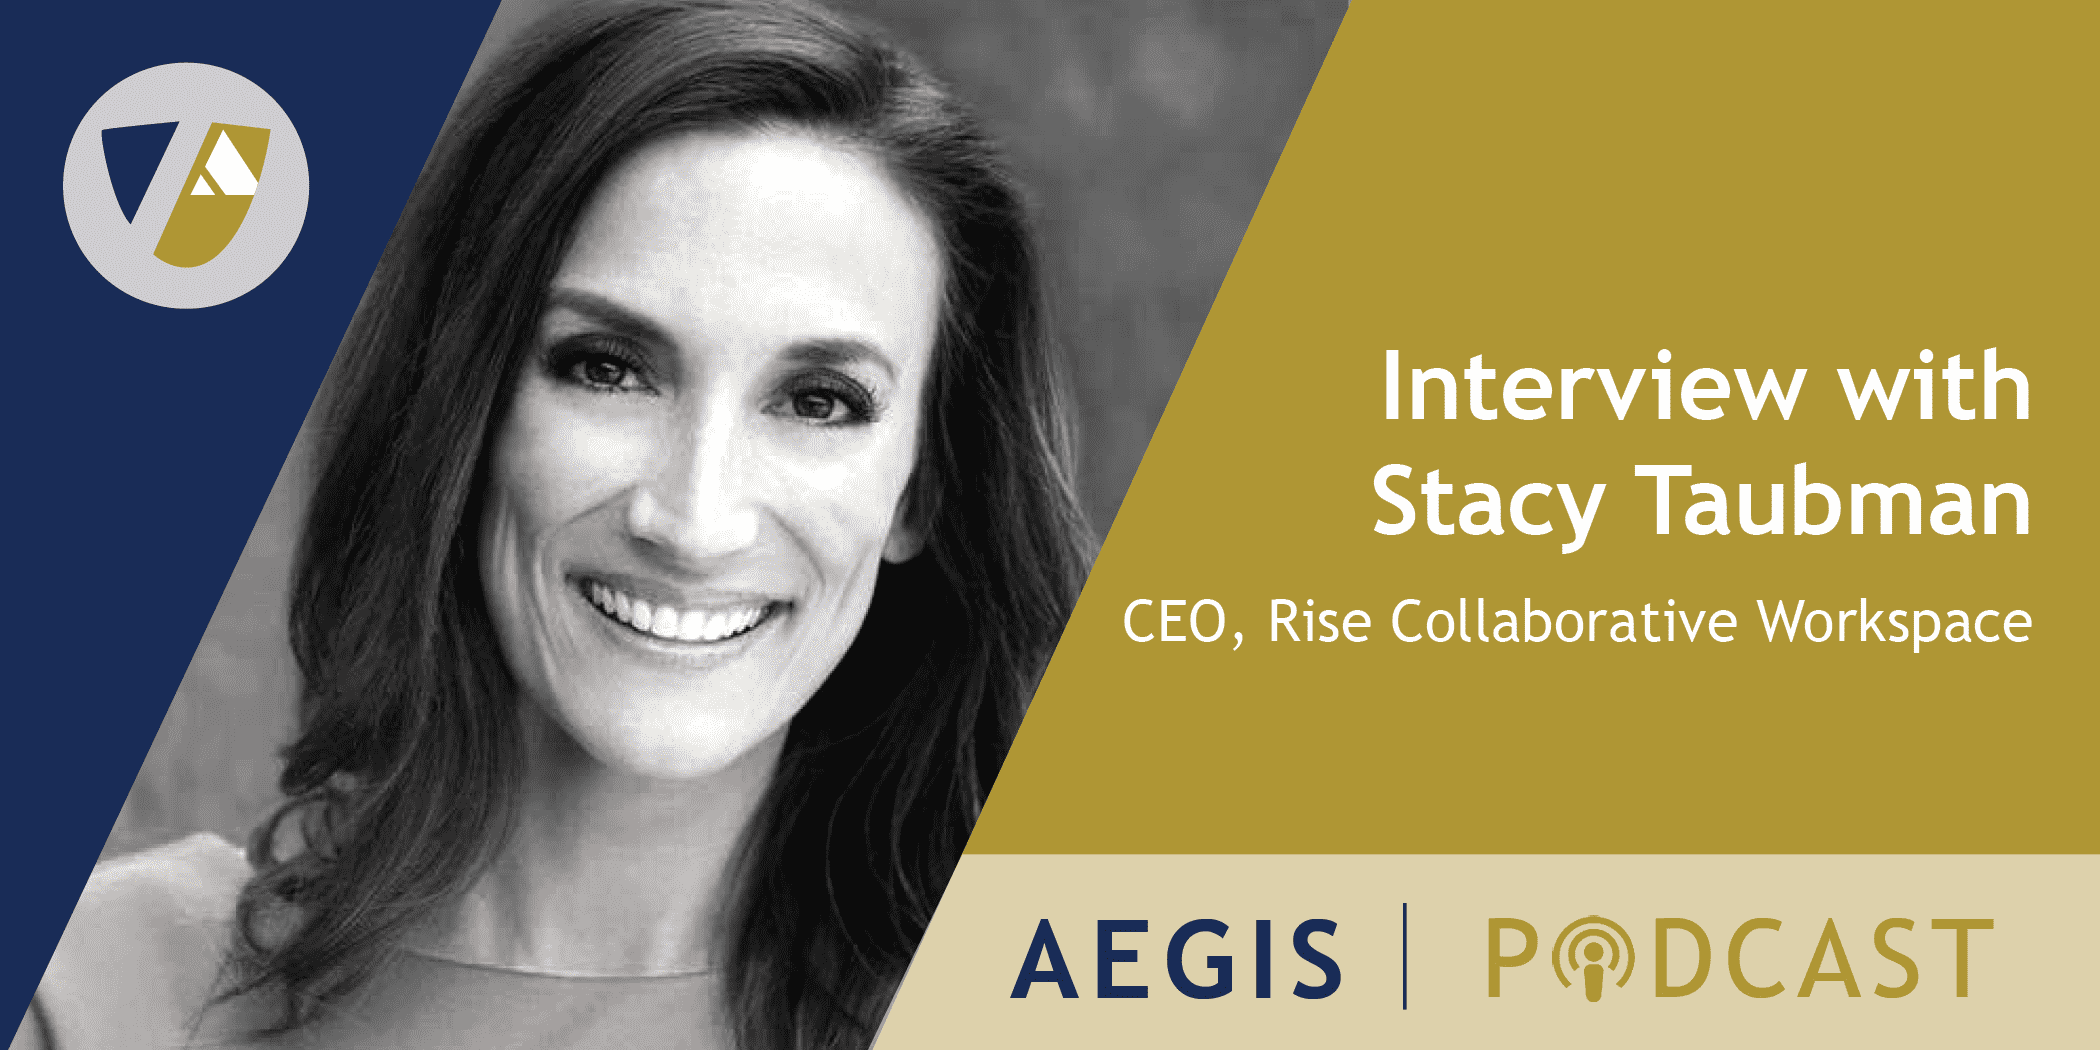 The AEGIS Podcast: Interview with Stacy Taubman, CEO: Rise Collaborative Workspace